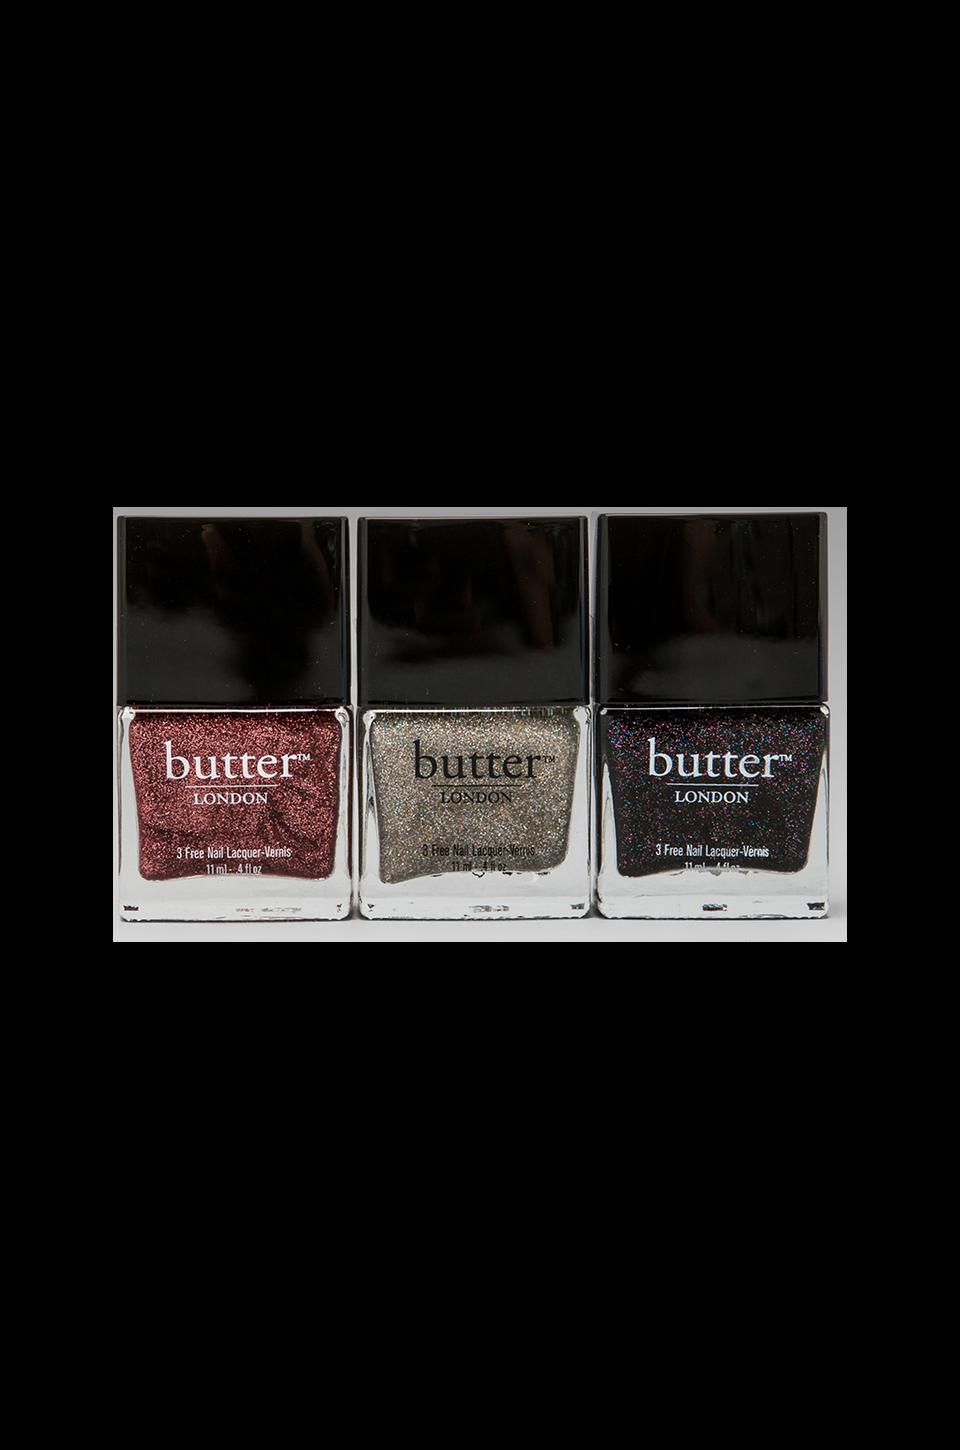 butter LONDON Holiday Glitter Trio Set in Rosie Lee/Fairy Cake/The Black Knight